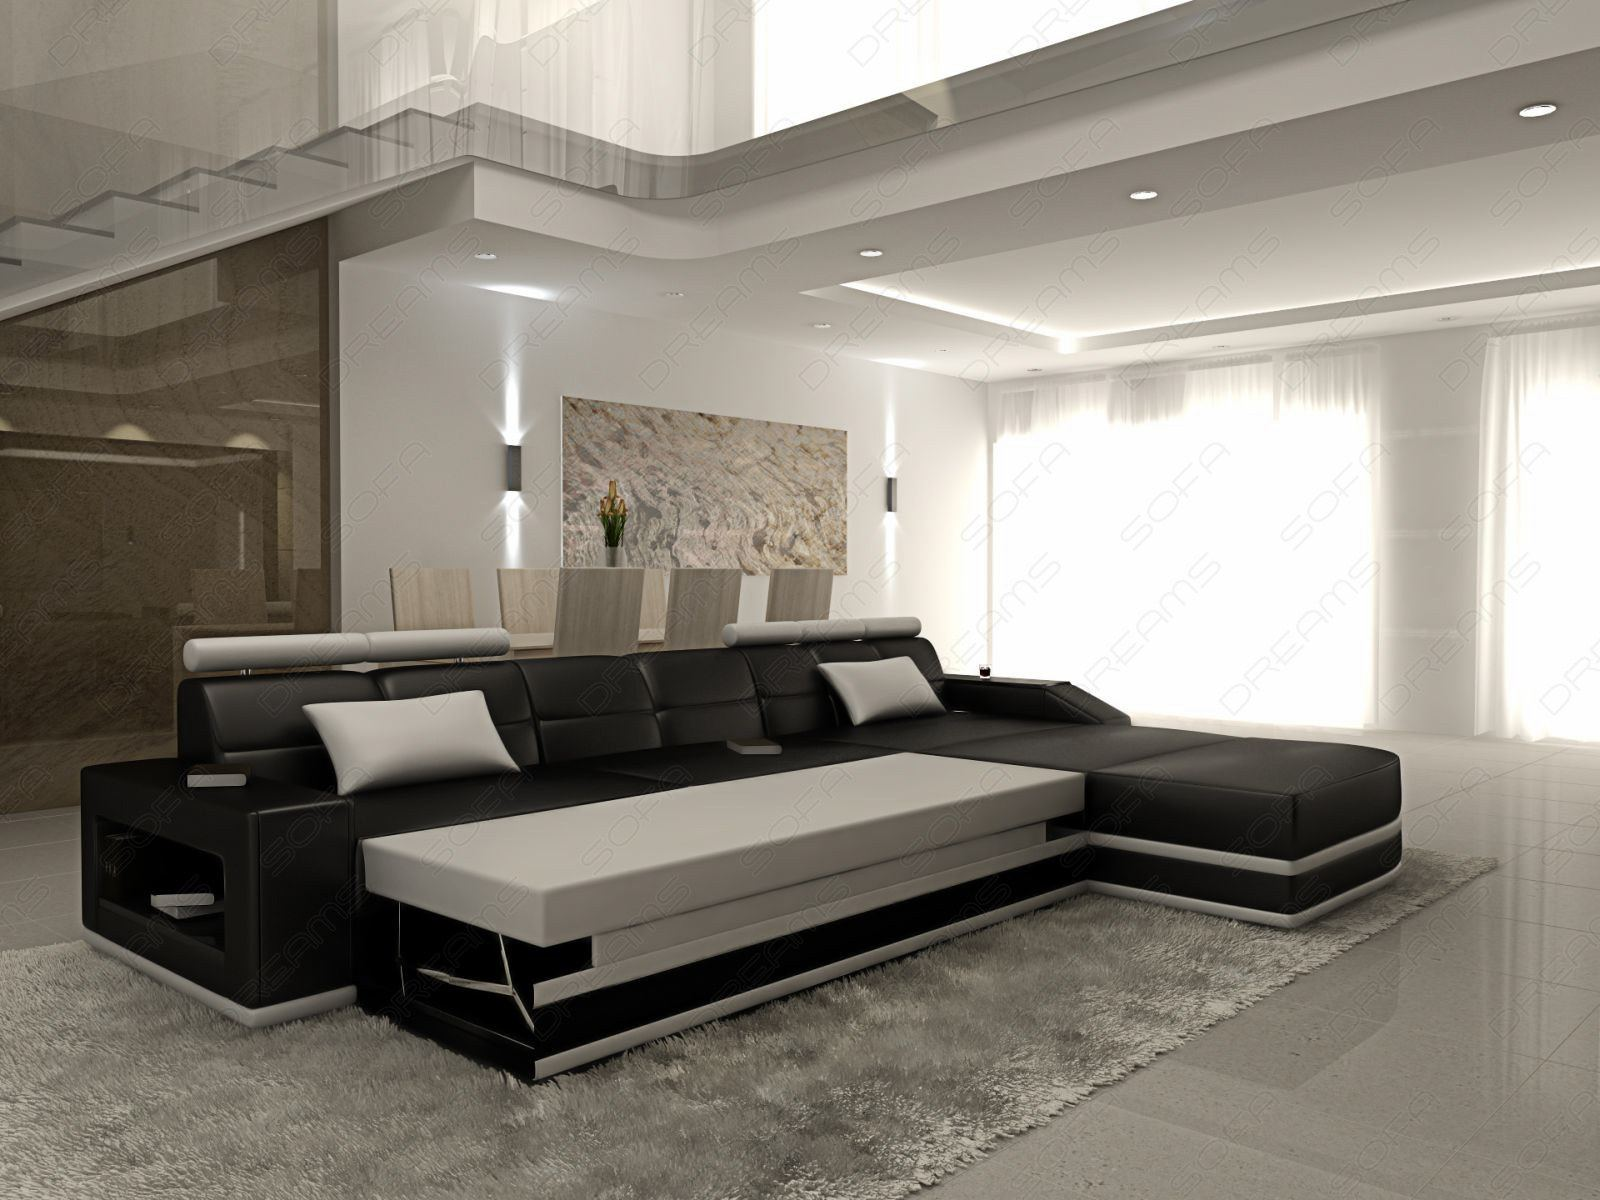 ledersofa venedig l form mit beleuchtung und bettfunktion weiss schwarz ebay. Black Bedroom Furniture Sets. Home Design Ideas